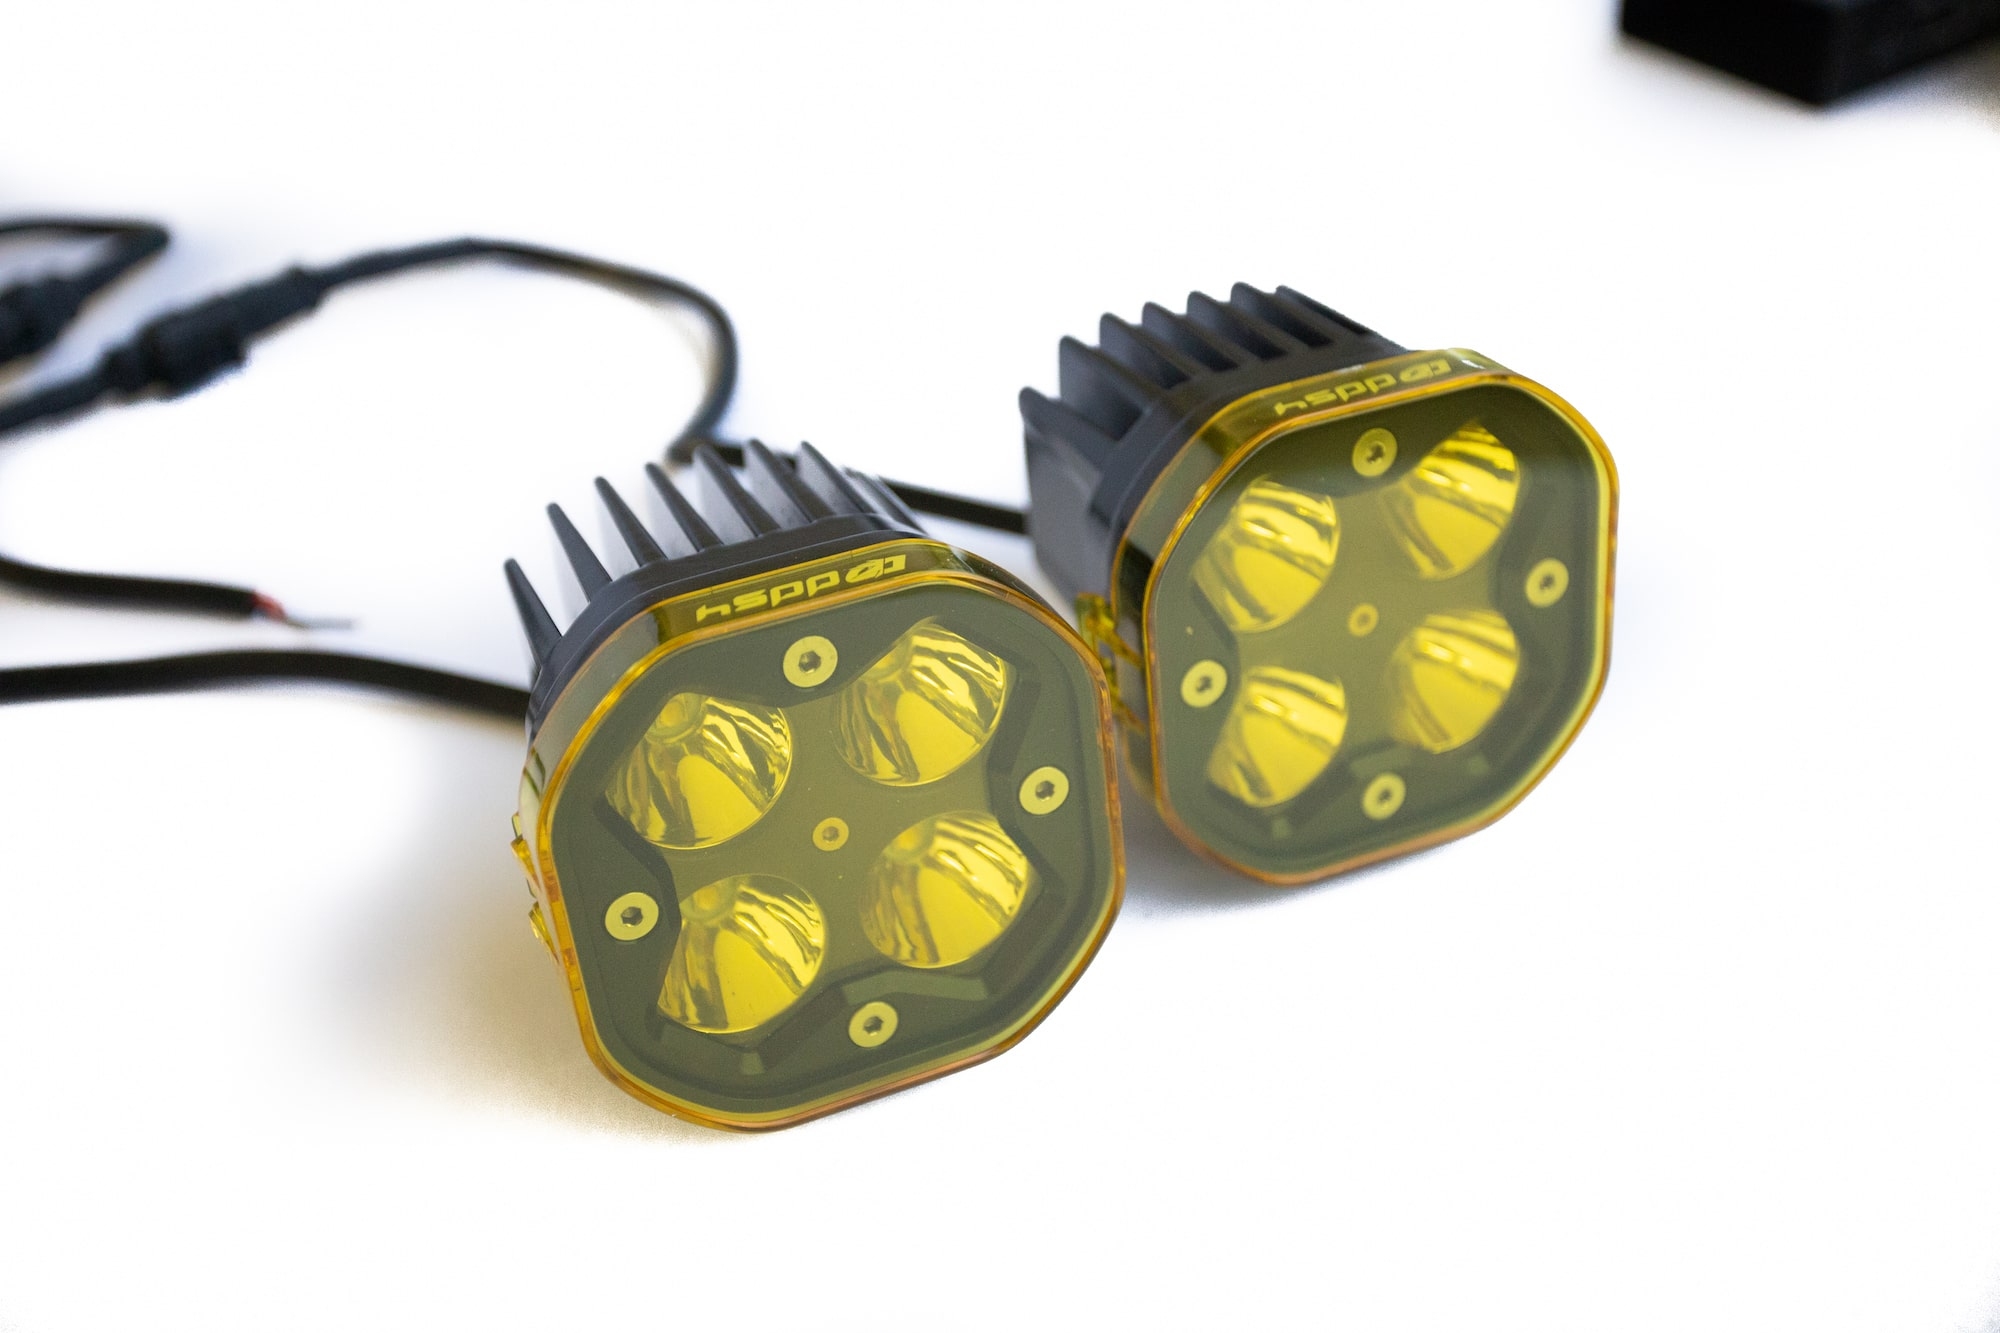 DDS4 / DDS4 PRO Yellow Lens & Light Cover/Diffuser Polycarbonate Construction (2-Pack Yellow Lens Cover Kit